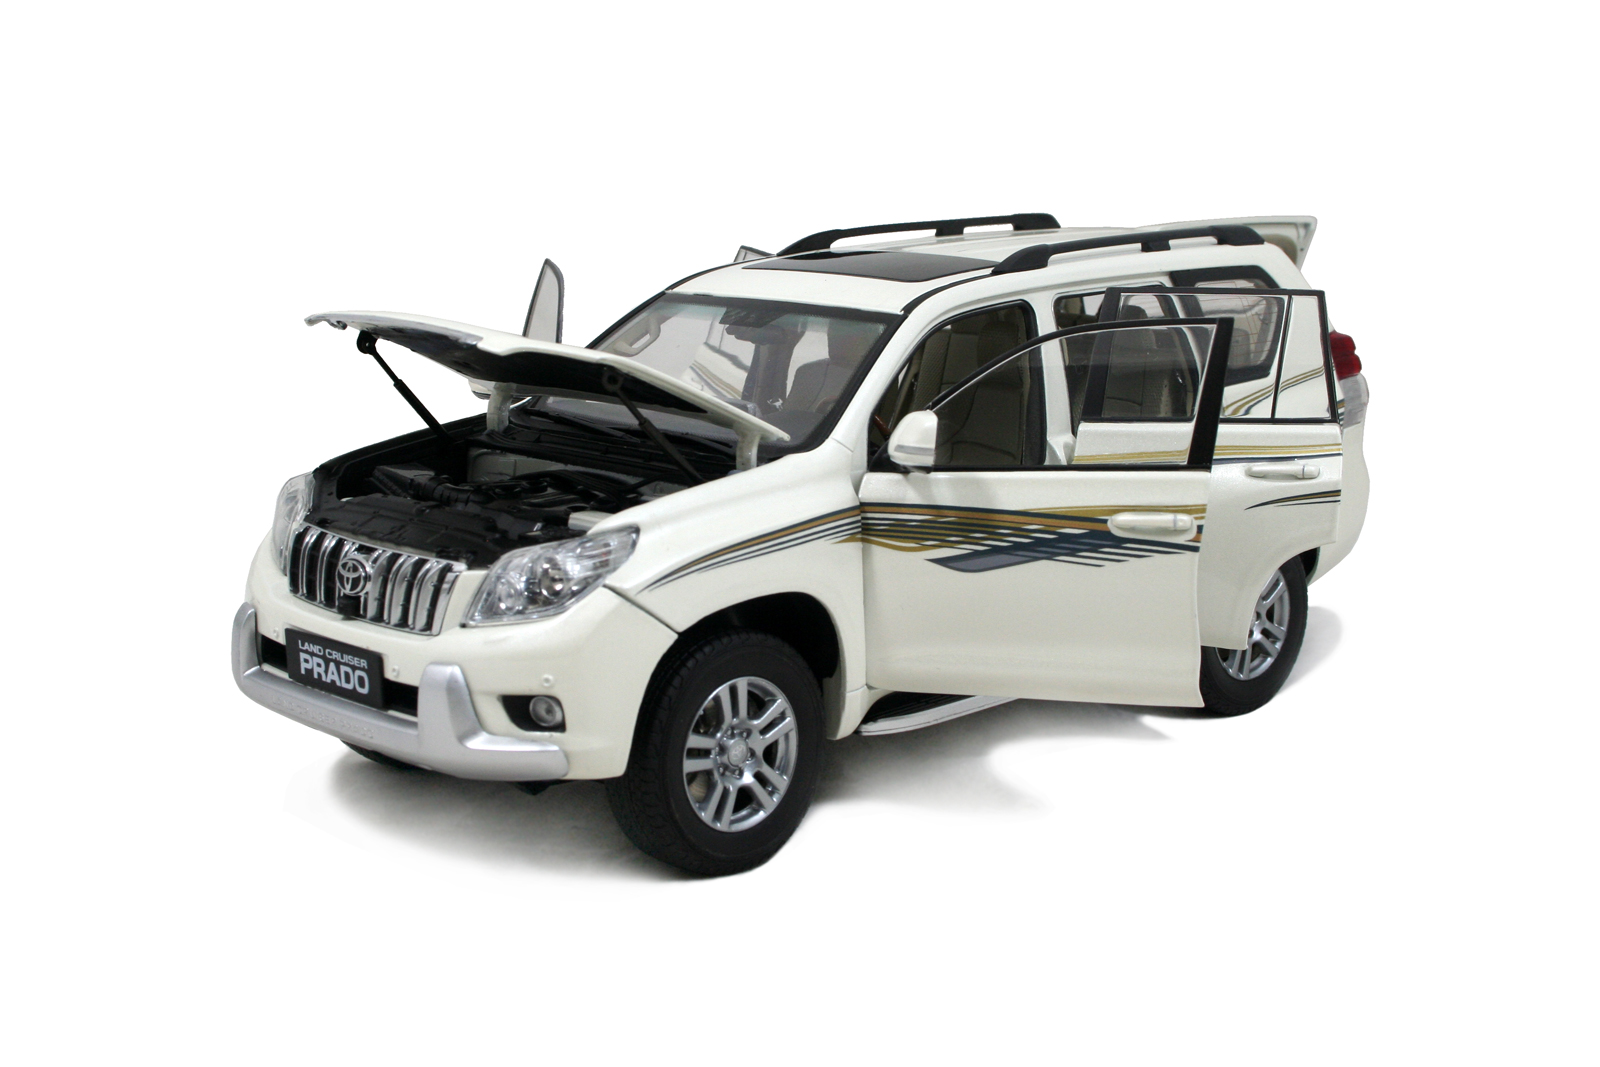 toyota land cruiser prado 2009 1 18 scale diecast model. Black Bedroom Furniture Sets. Home Design Ideas